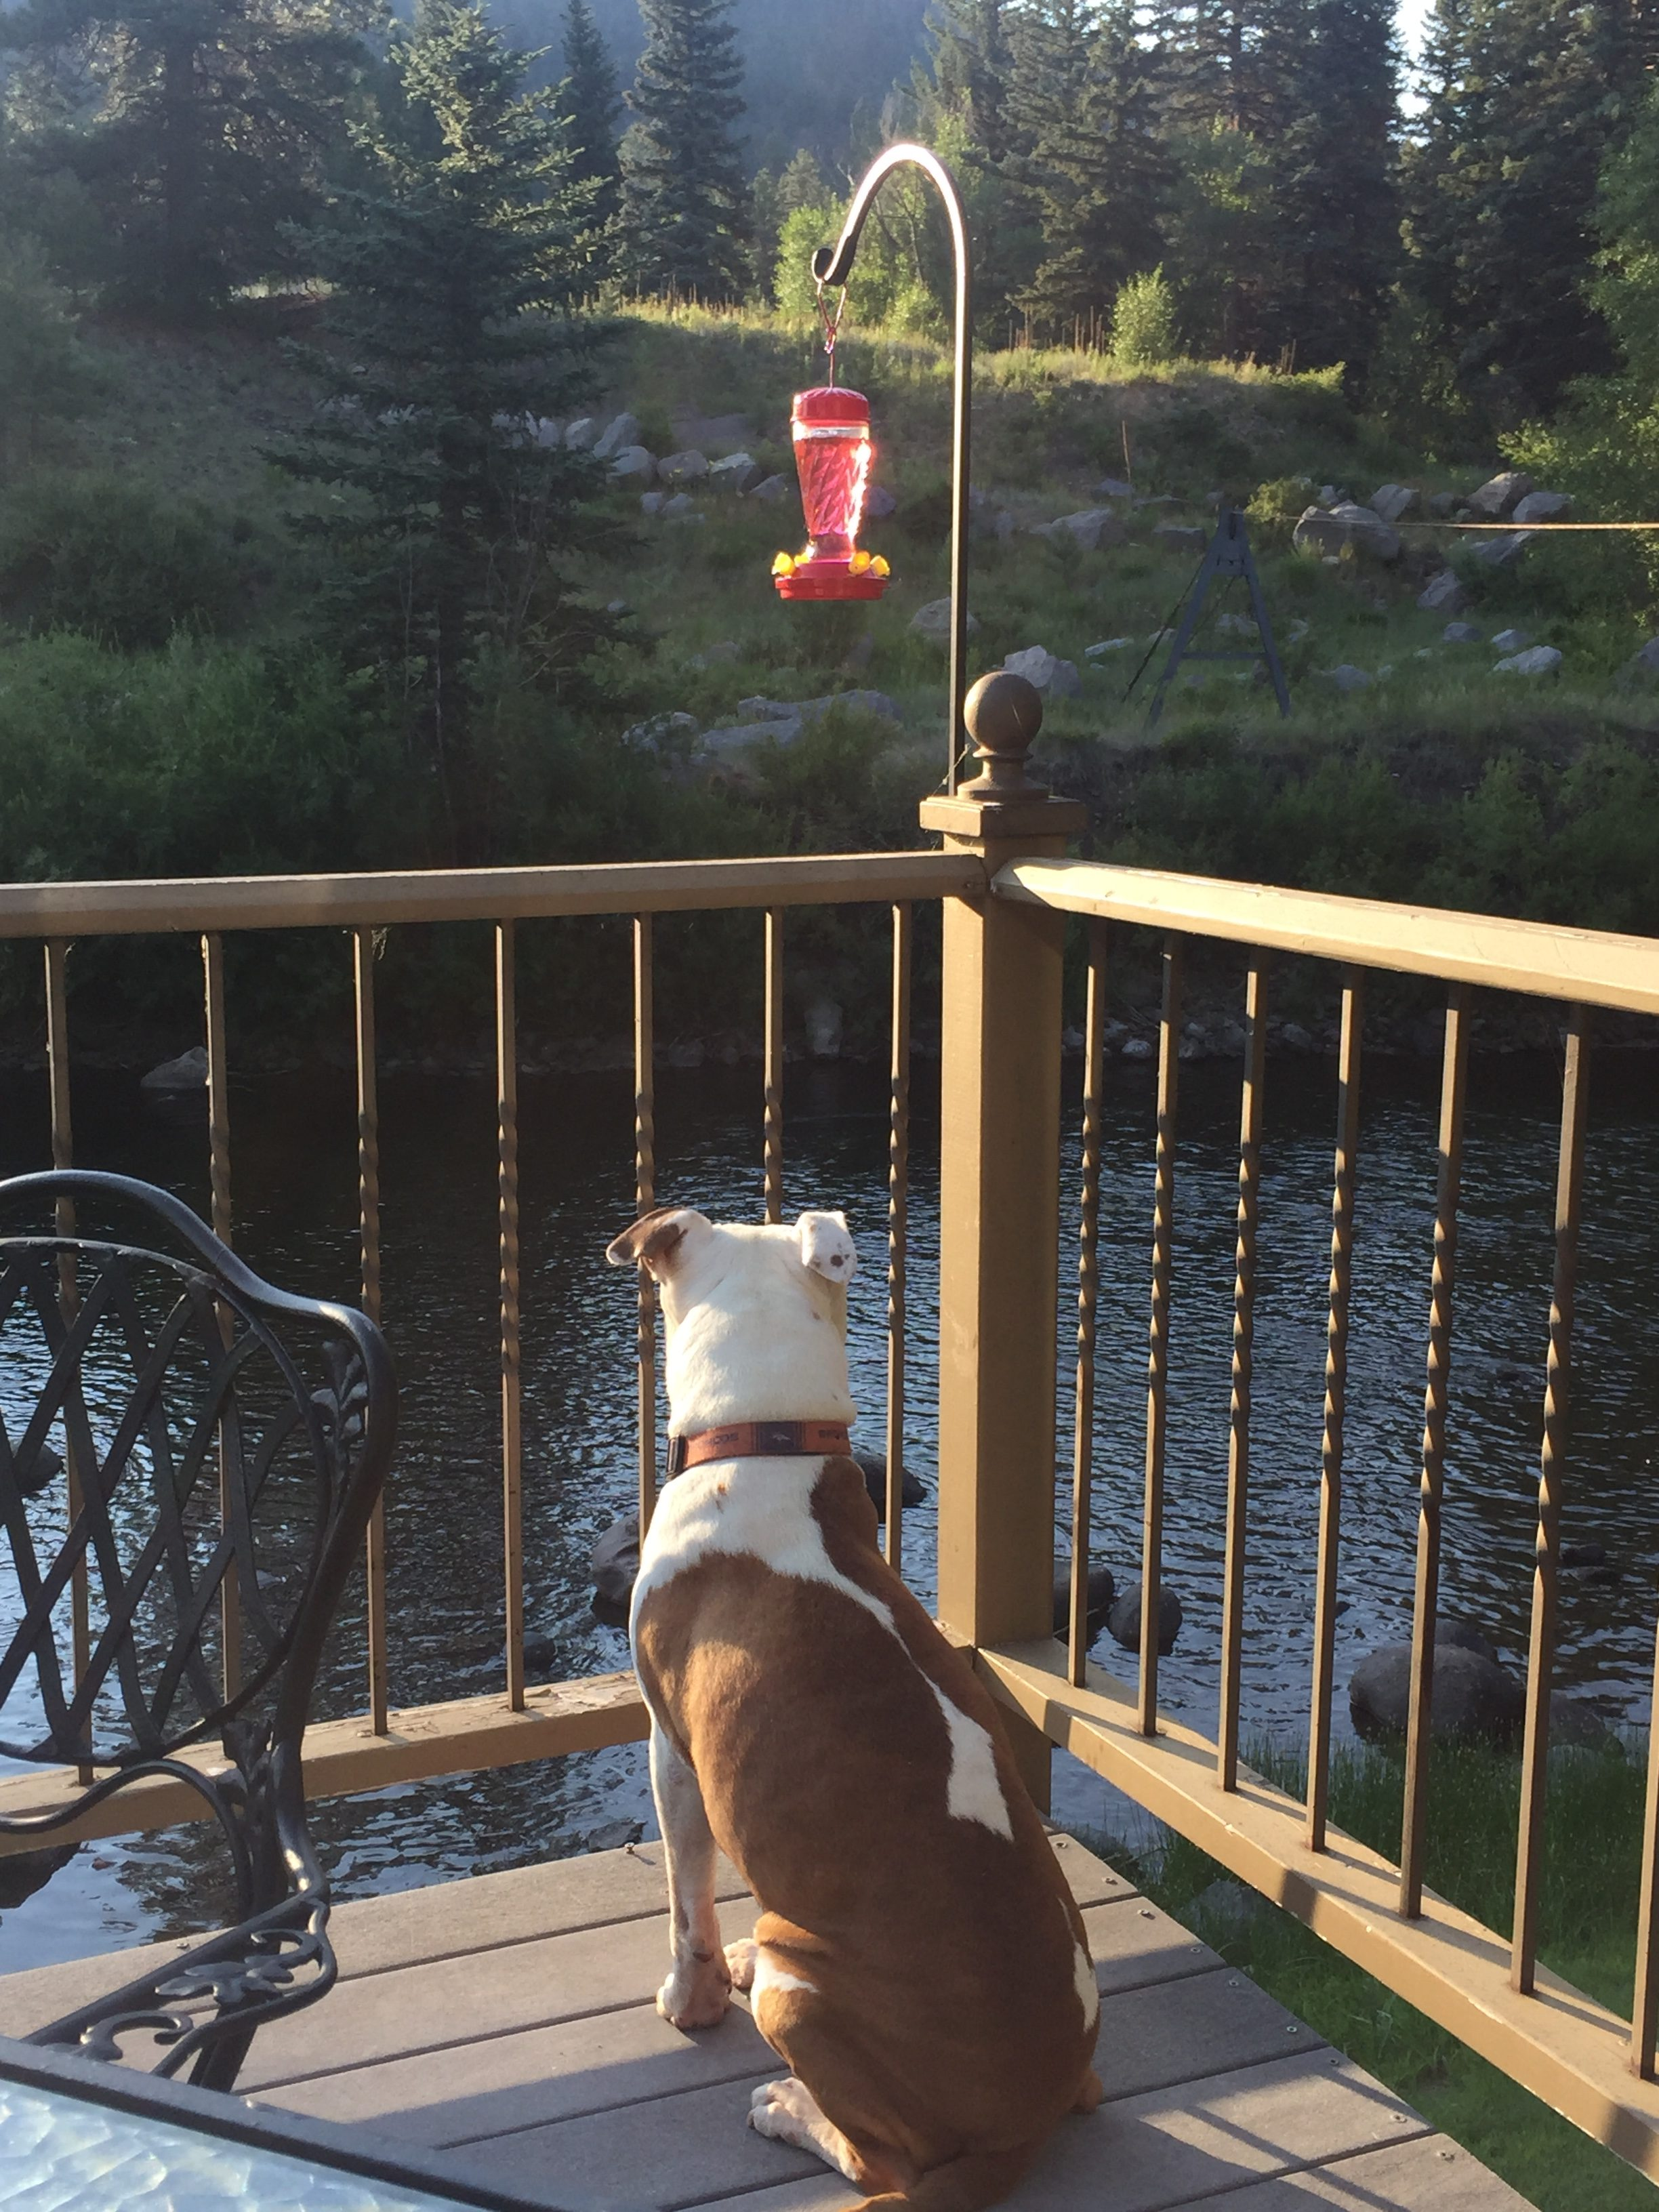 A brown and white dog watches the river flow below him from his seat on the railed porch